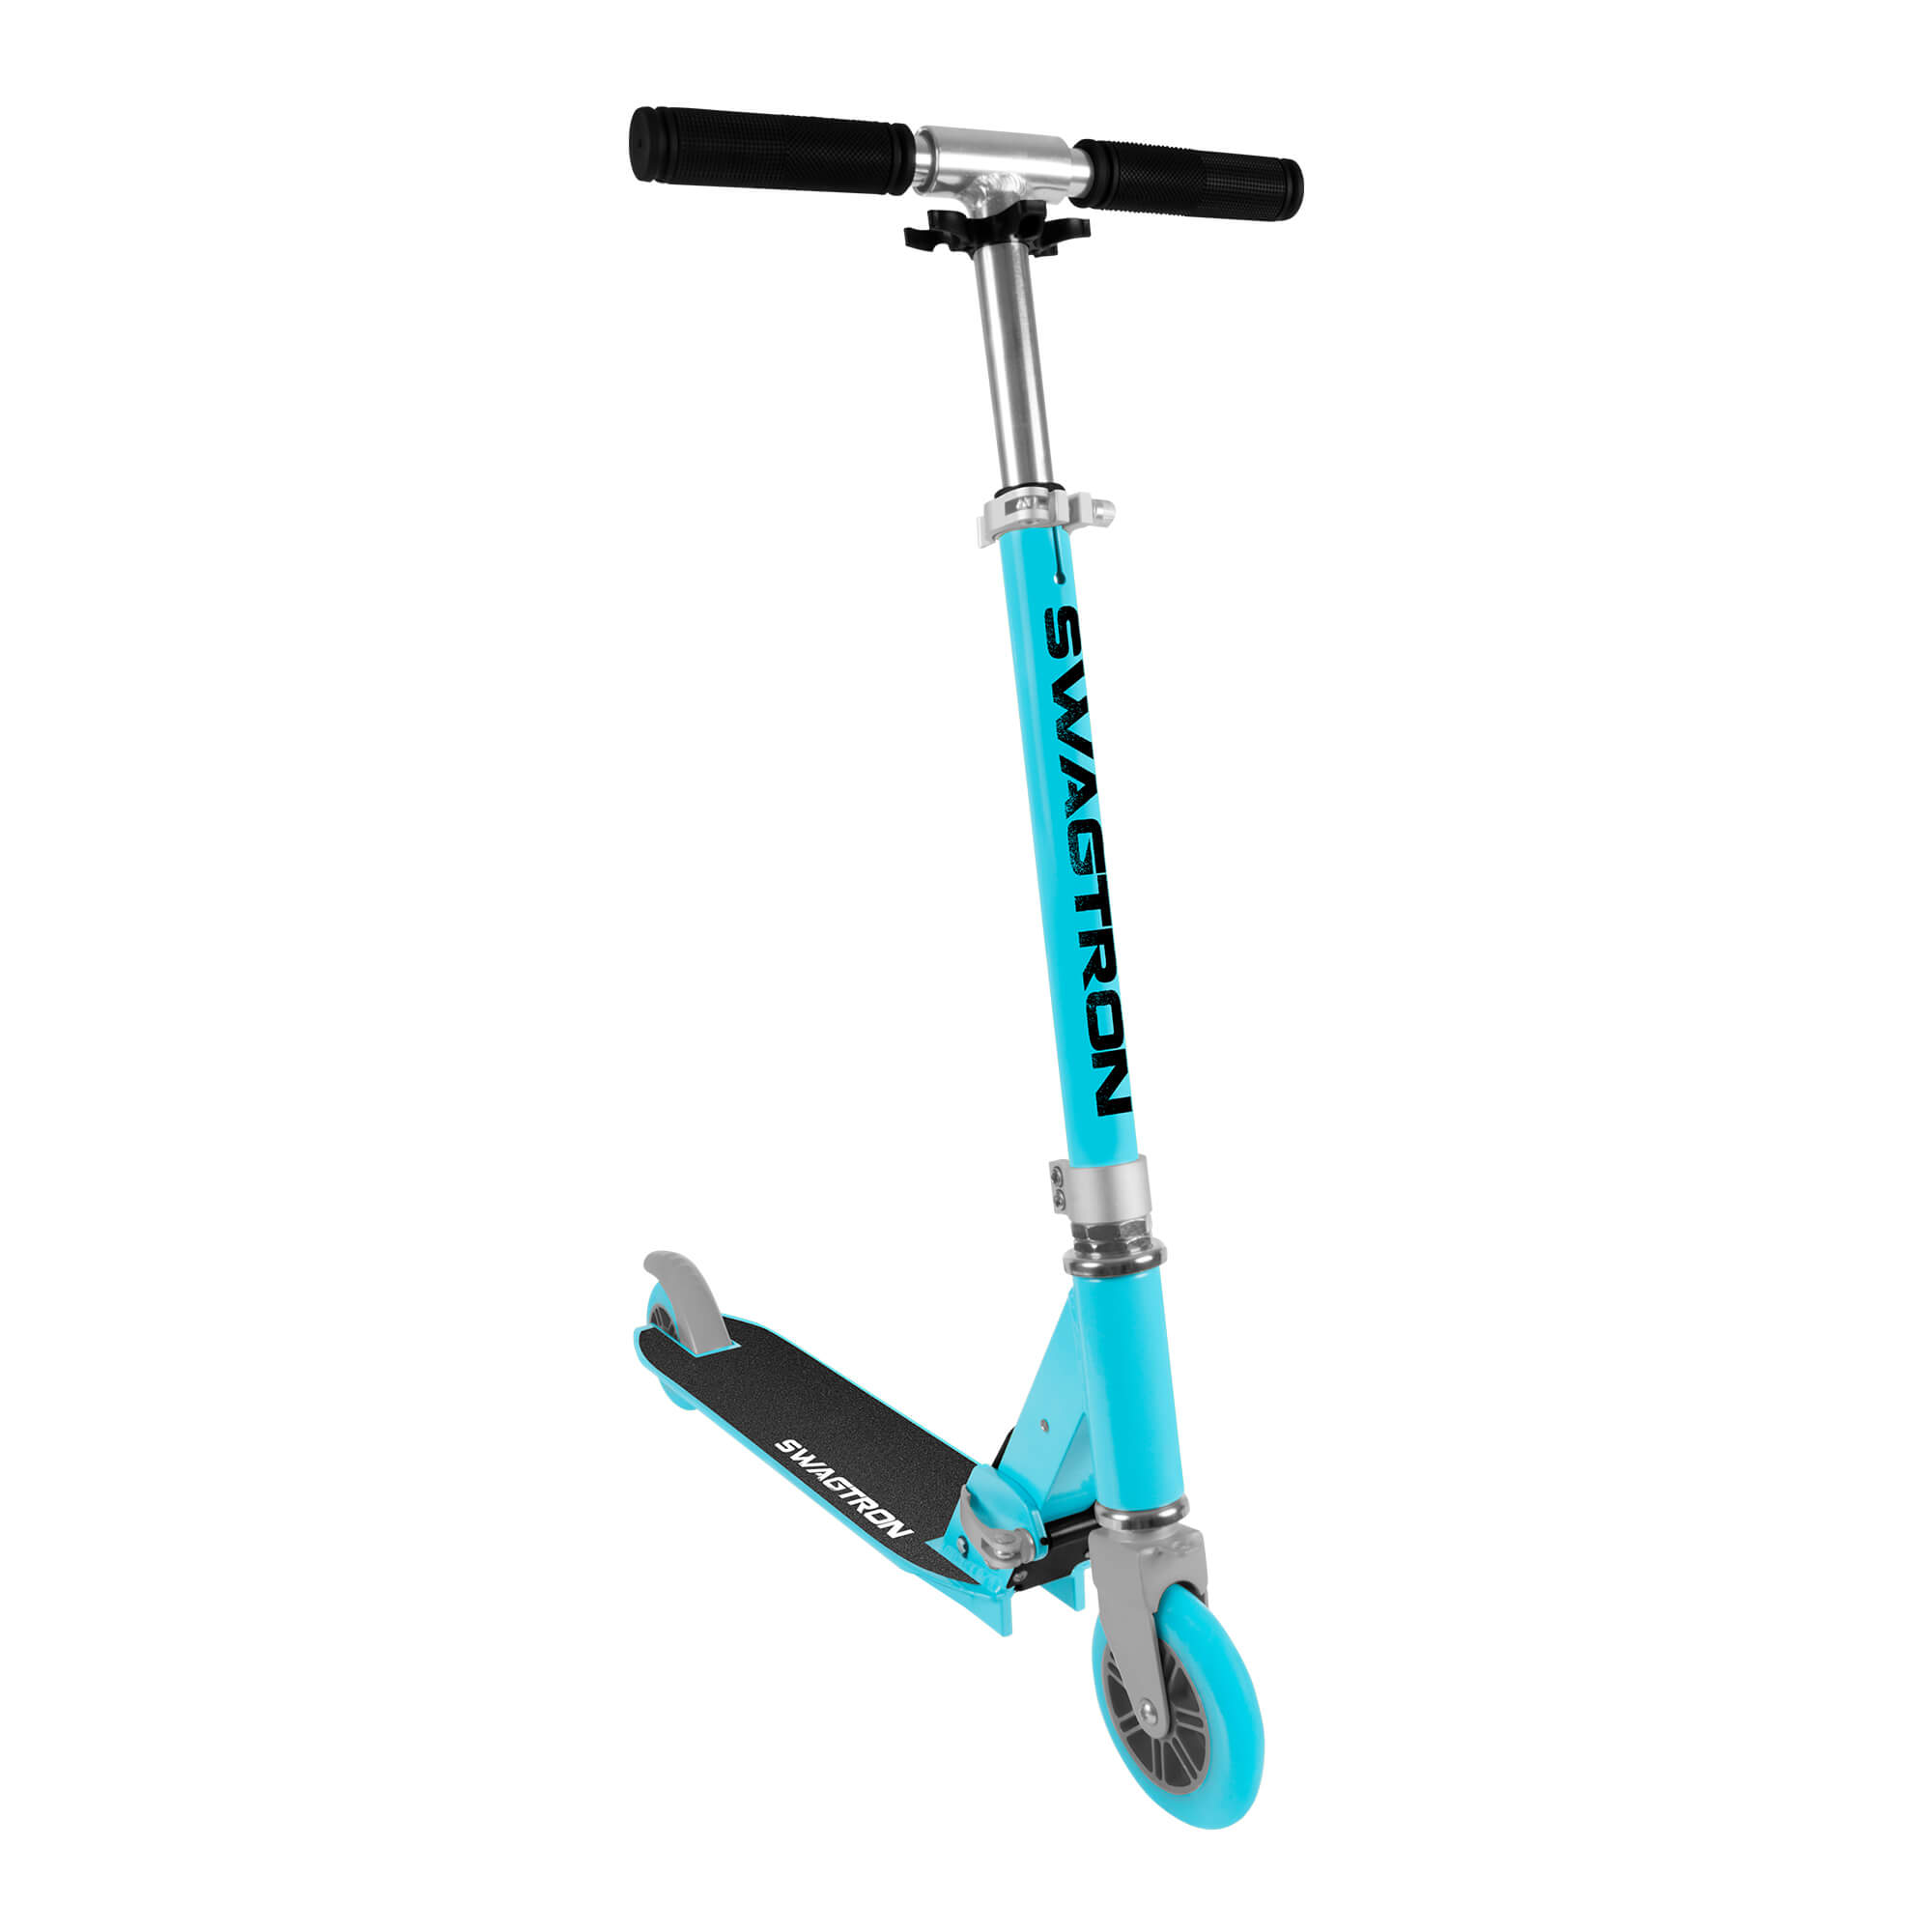 K1 Kids Kick Scooter Light Blue color